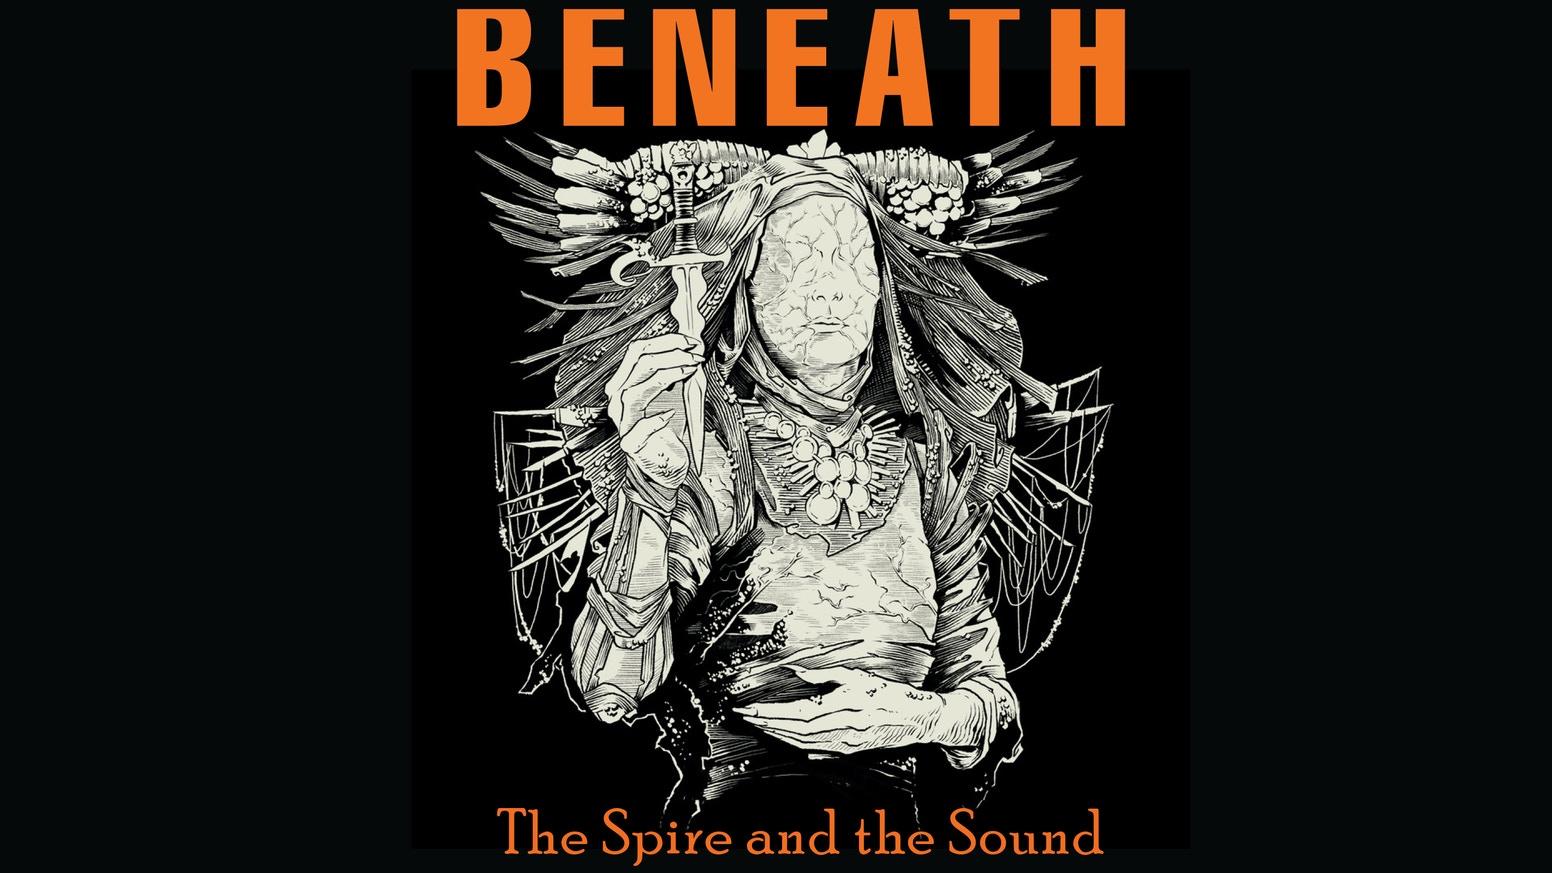 Beneath, the Spire and the Sound - book 2 of the Beneath series, a system-agnostic RPG module.